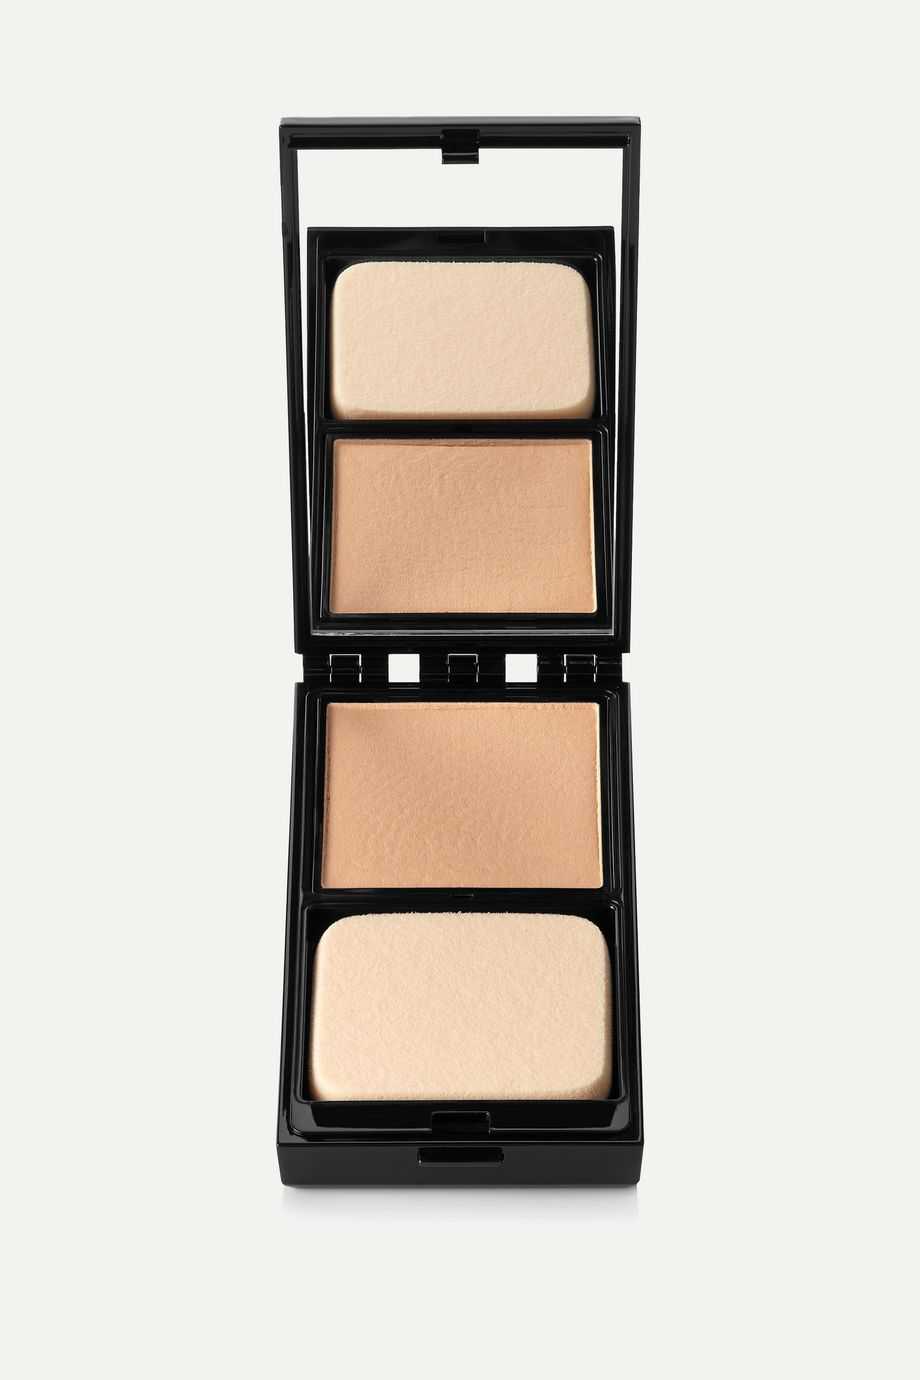 Serge Lutens Teint Si Fin Compact Foundation – 020 – Foundation